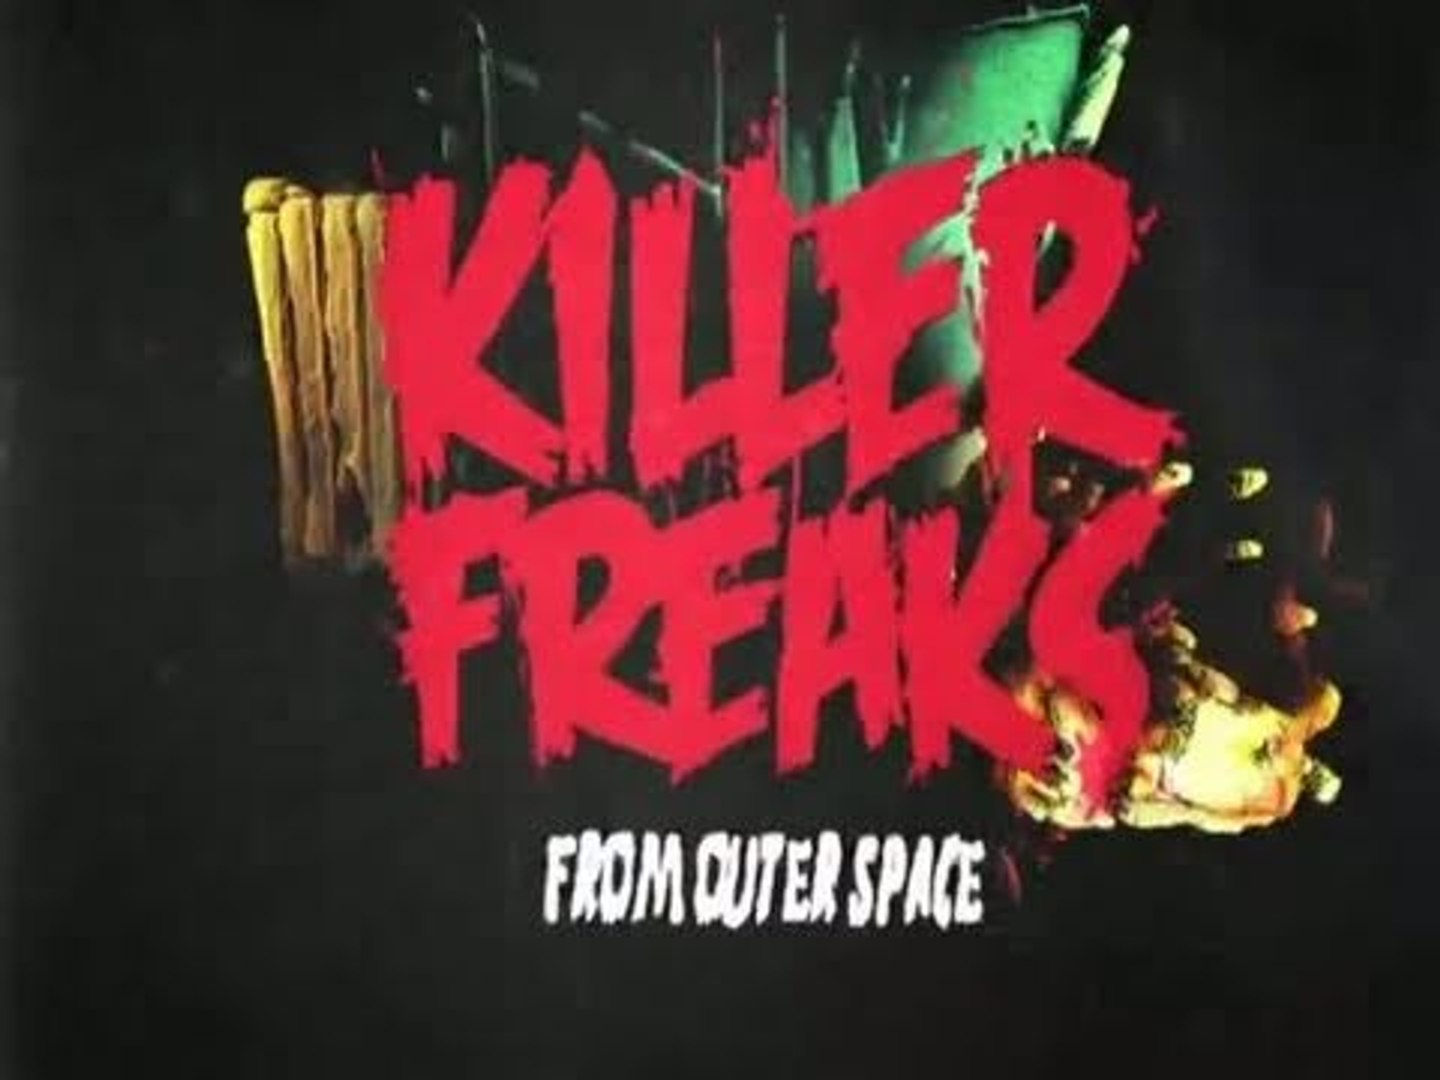 Killer Freaks From Outer Space : Wii U Trailer (E3 2011)